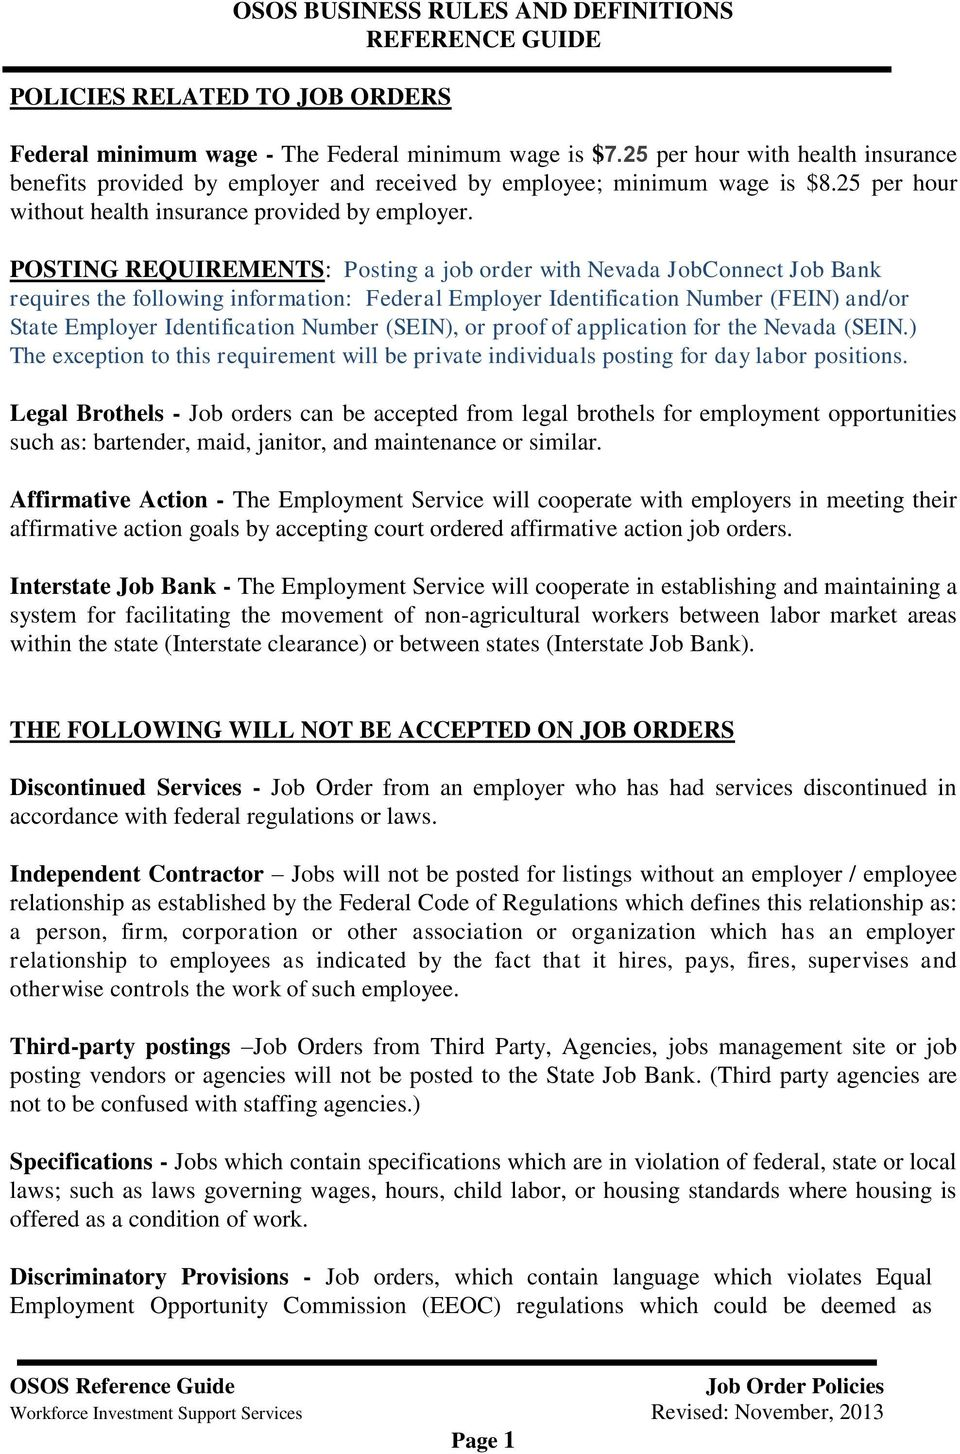 POSTING REQUIREMENTS: Posting a job order with Nevada JobConnect Job Bank requires the following information: Federal Employer Identification Number (FEIN) and/or State Employer Identification Number